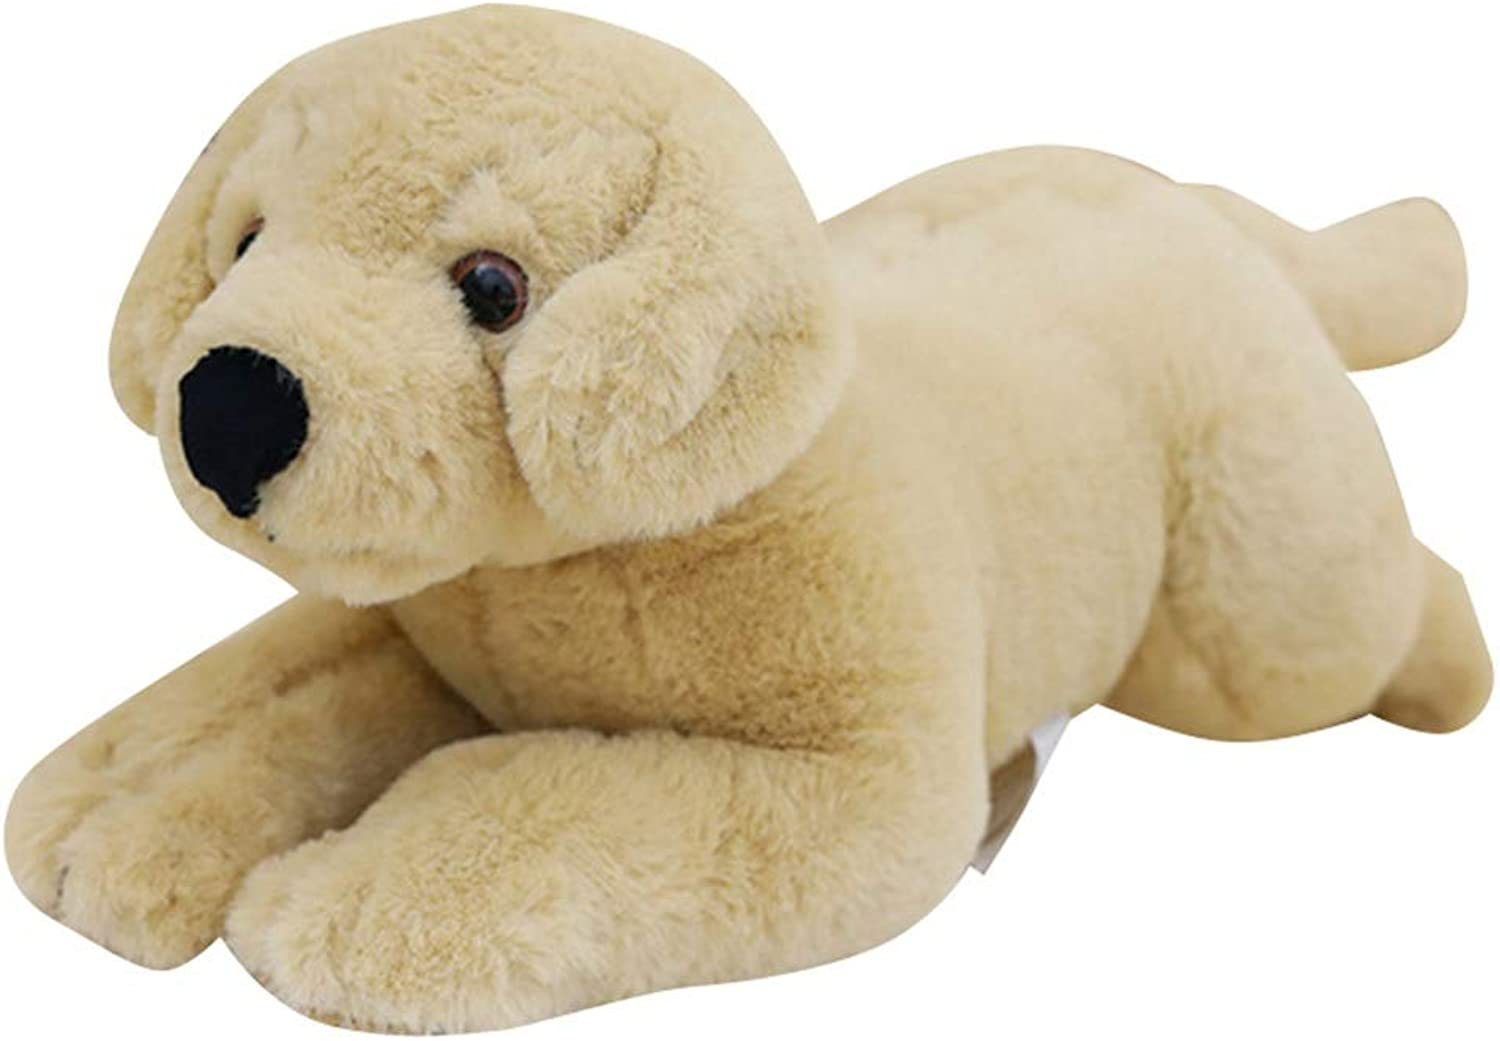 Stuffed Stoy Soft Dog Pillow Cuddly Cartoon Animal Doll Plush Toy Sleeping Comfort Cushion Pillow Gift for Kids (Size   40CM)